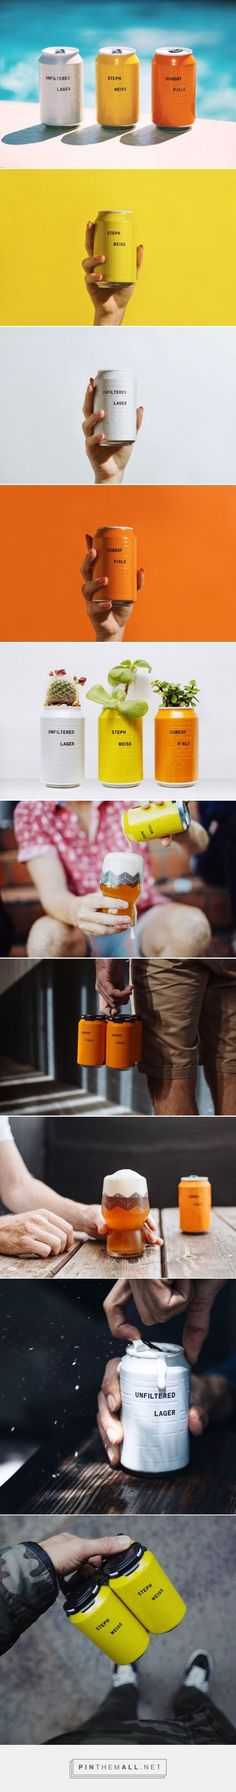 Packaging of the World is a package design inspiration archive showcasing the best, most interesting and creative work worldwide. Coffee Packaging, Bottle Packaging, Food Packaging, Simple Packaging, Product Packaging, Photography Tutorials, Love Photography, Product Photography, Summer Photography